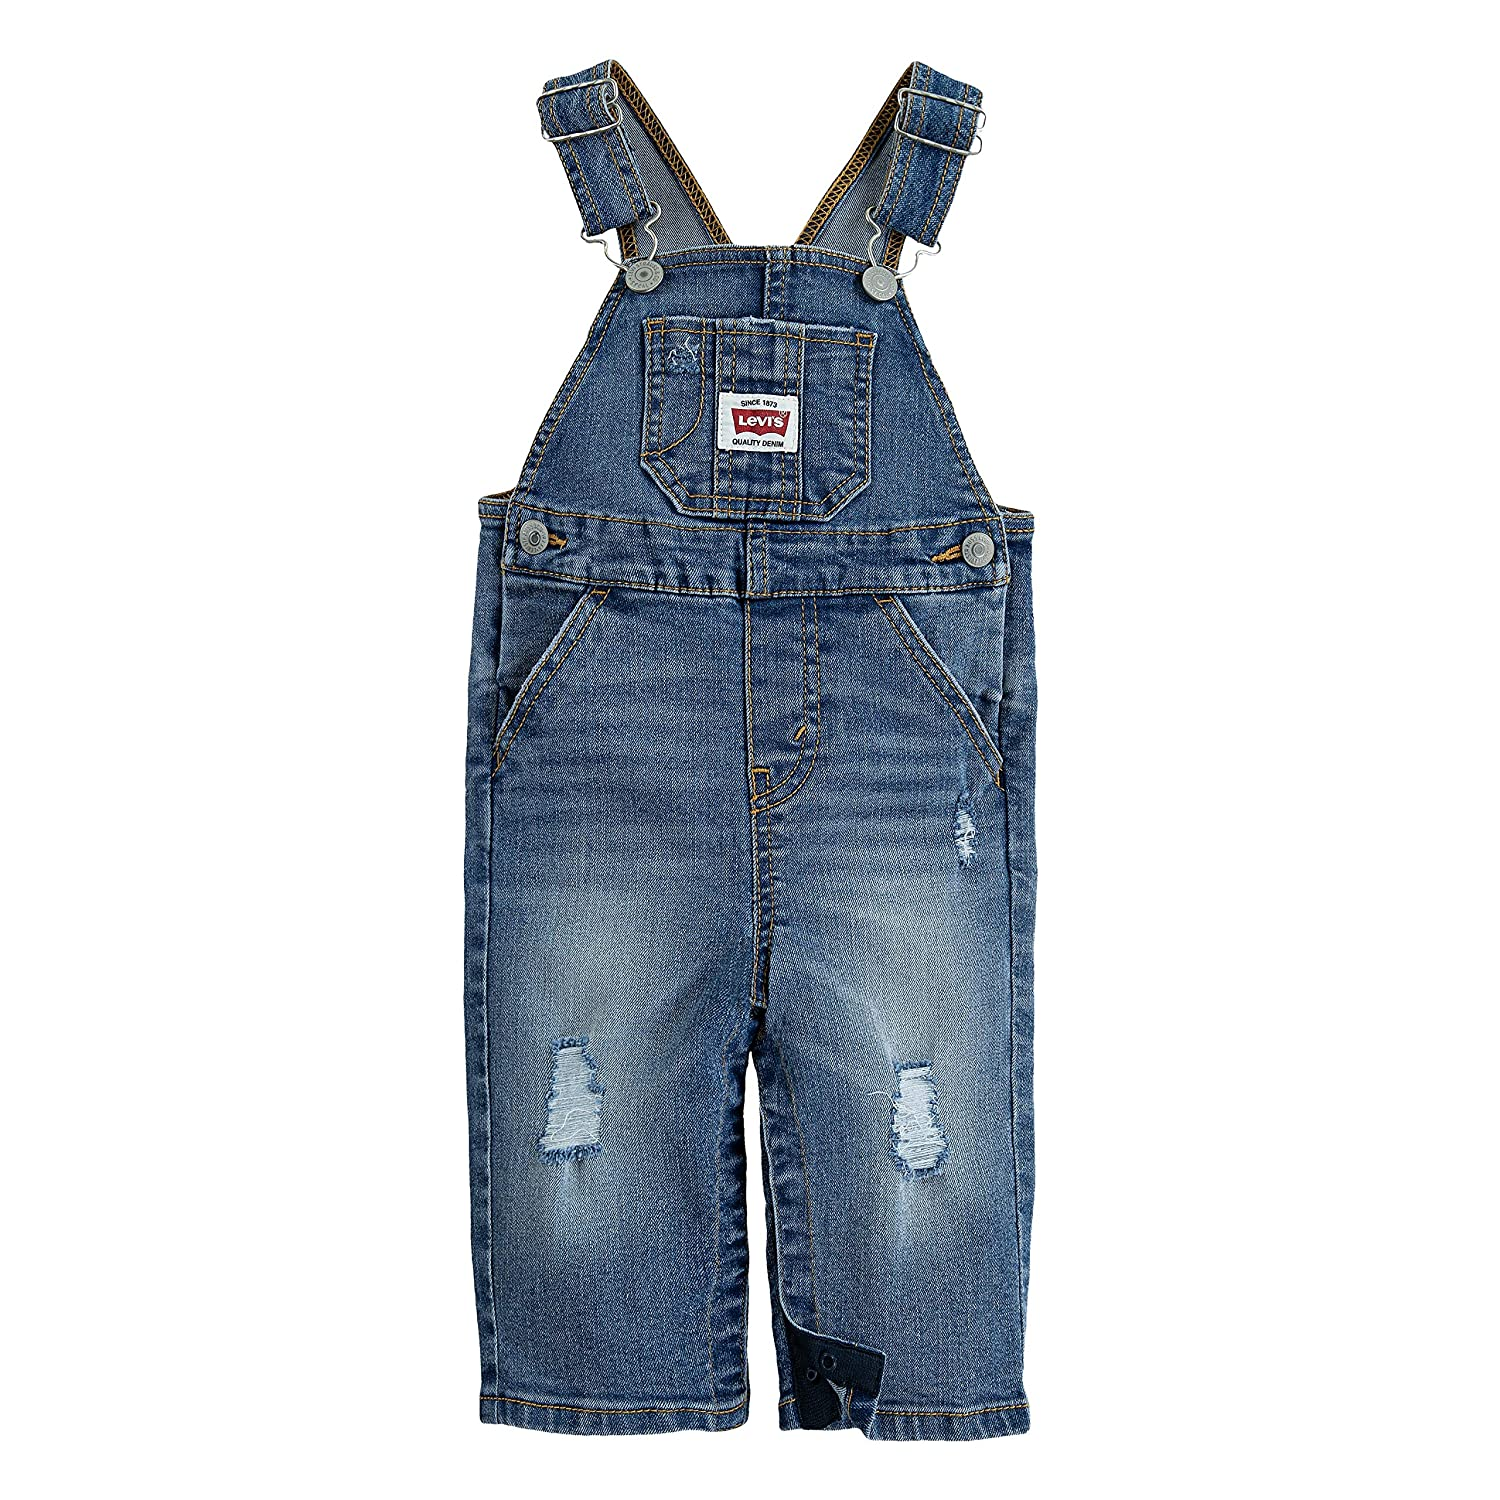 Amazon.com: Levis - Mono vaquero para niño: Clothing